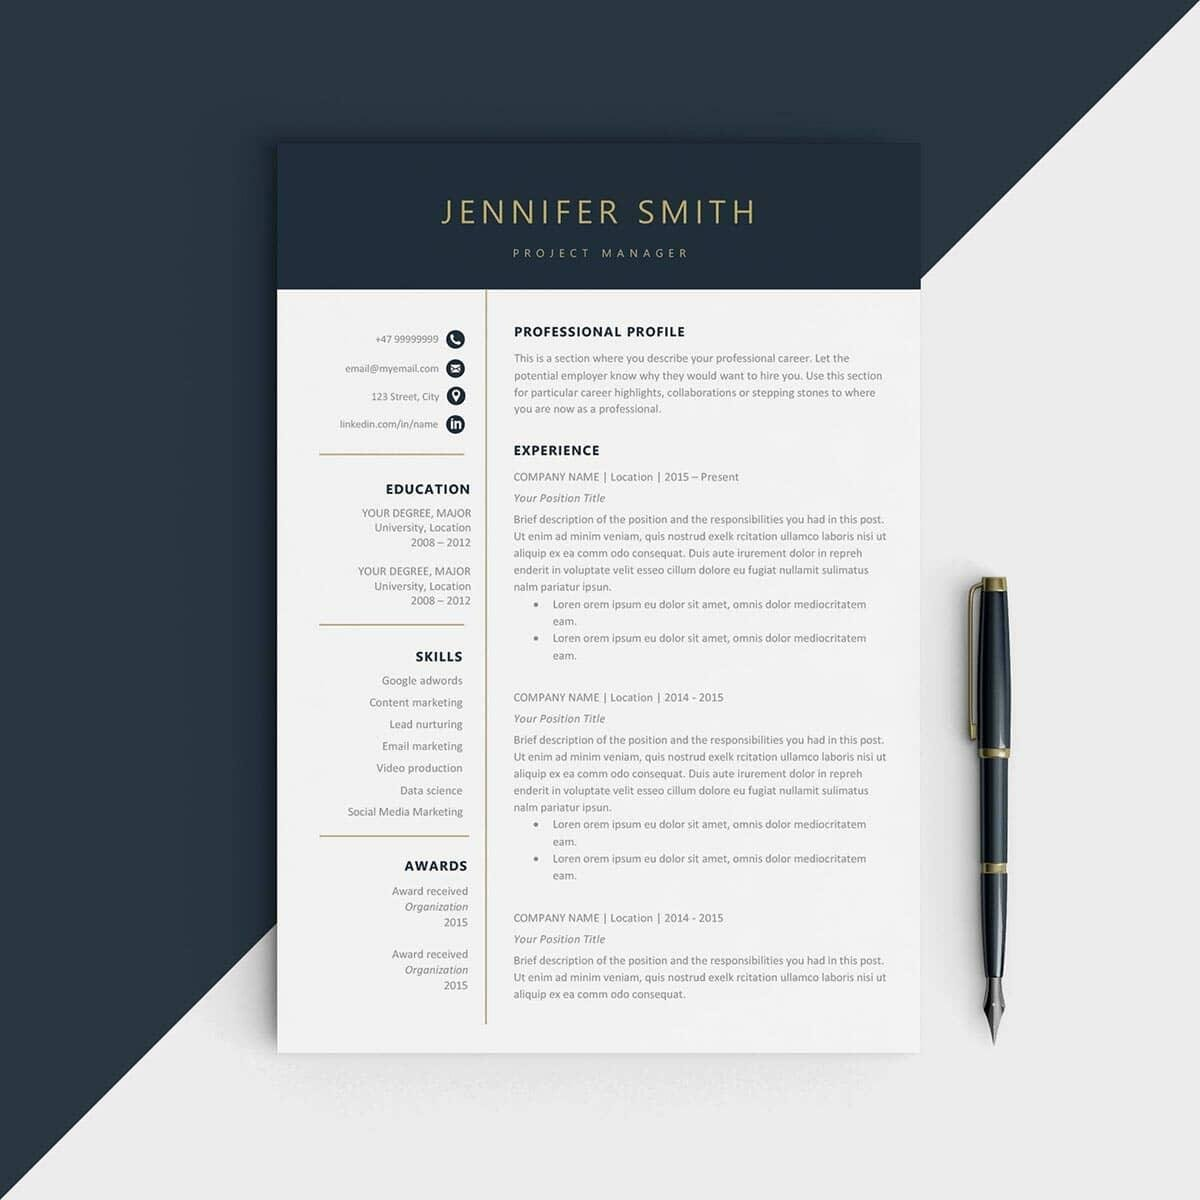 Professional Cv Resume Templates: Best Resume Templates: 15 Examples To Download & Use Right